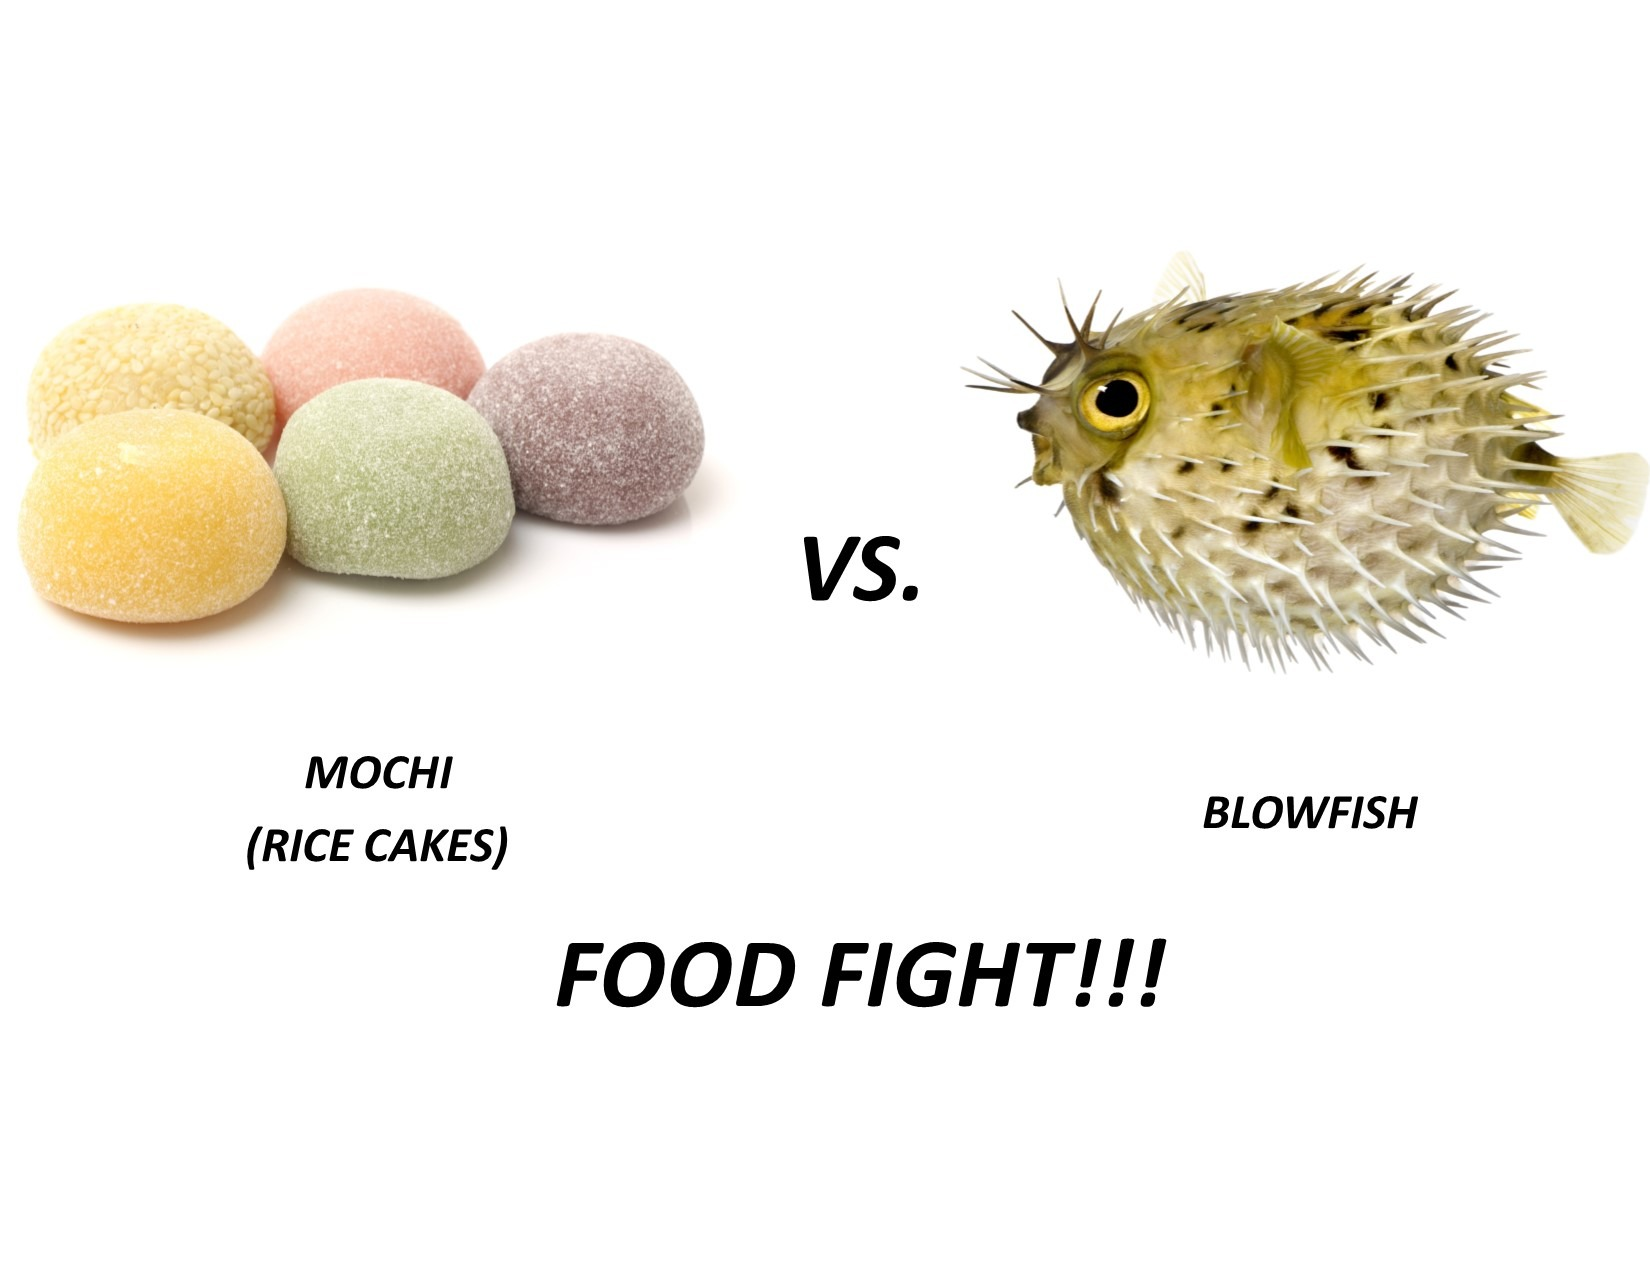 Mochi vs Blowfish